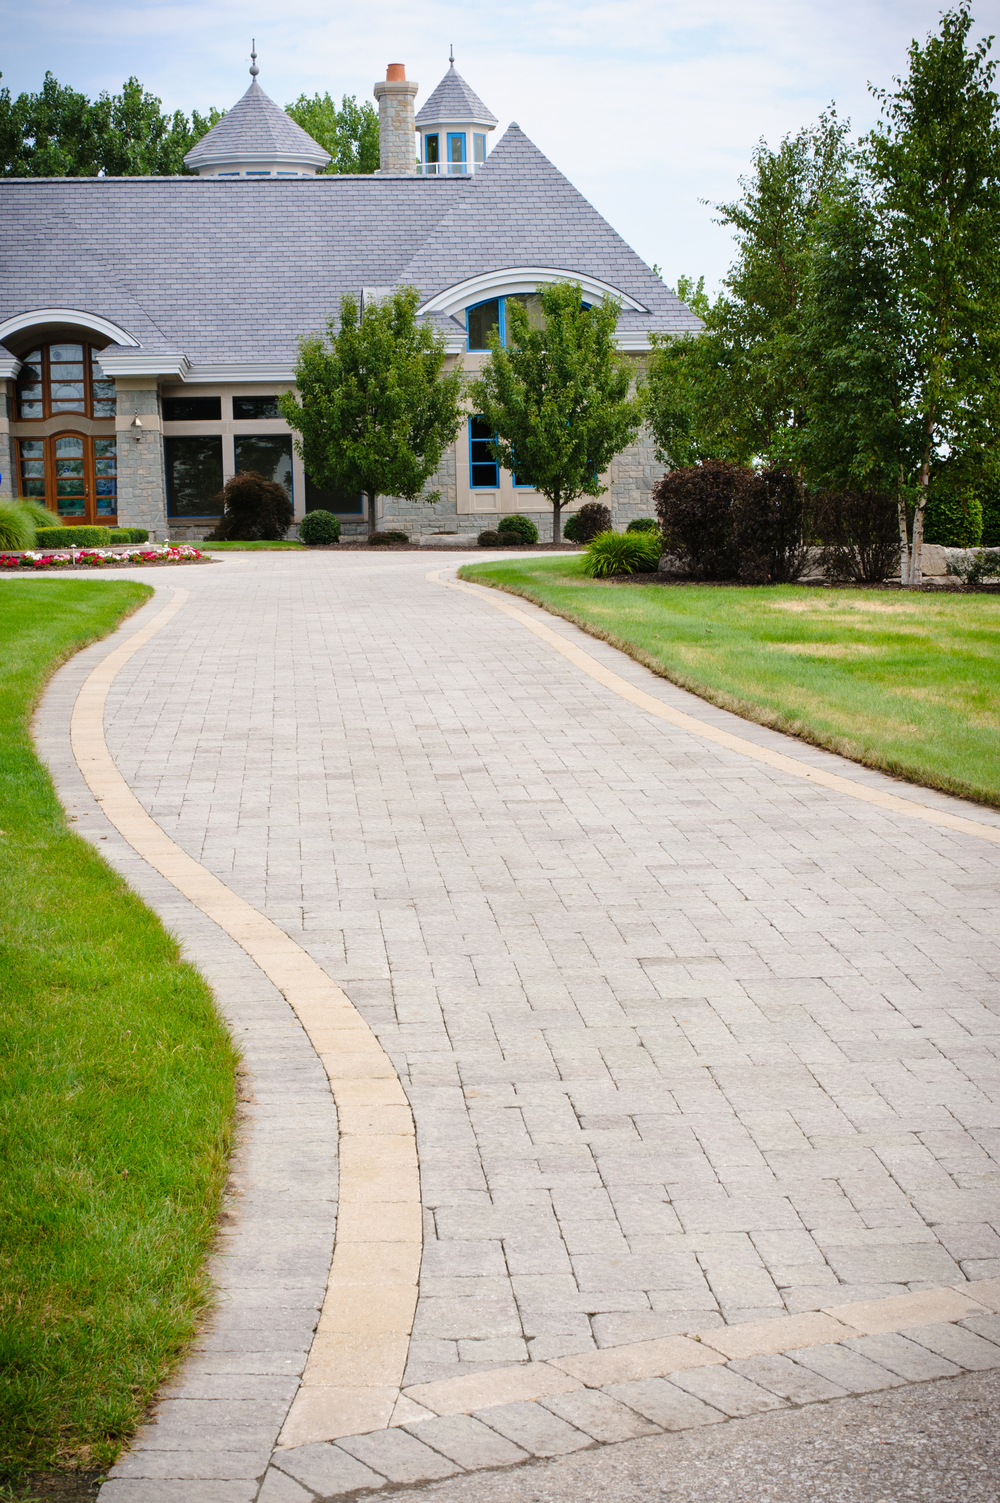 Brick Paver Driveway with Border